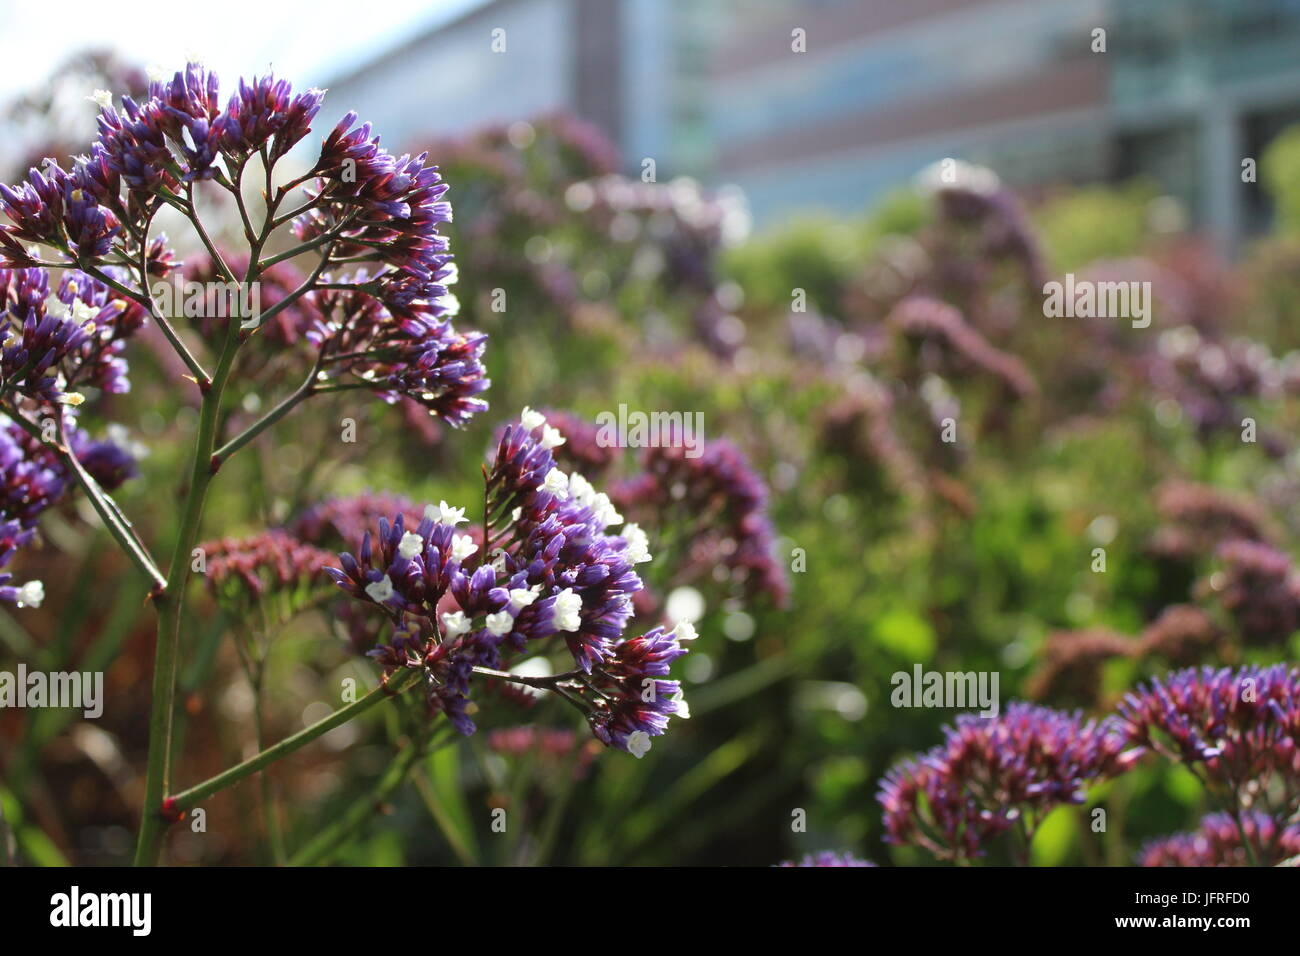 Statice flowers in full bloom in Mission Bay Commons Park - Stock Image